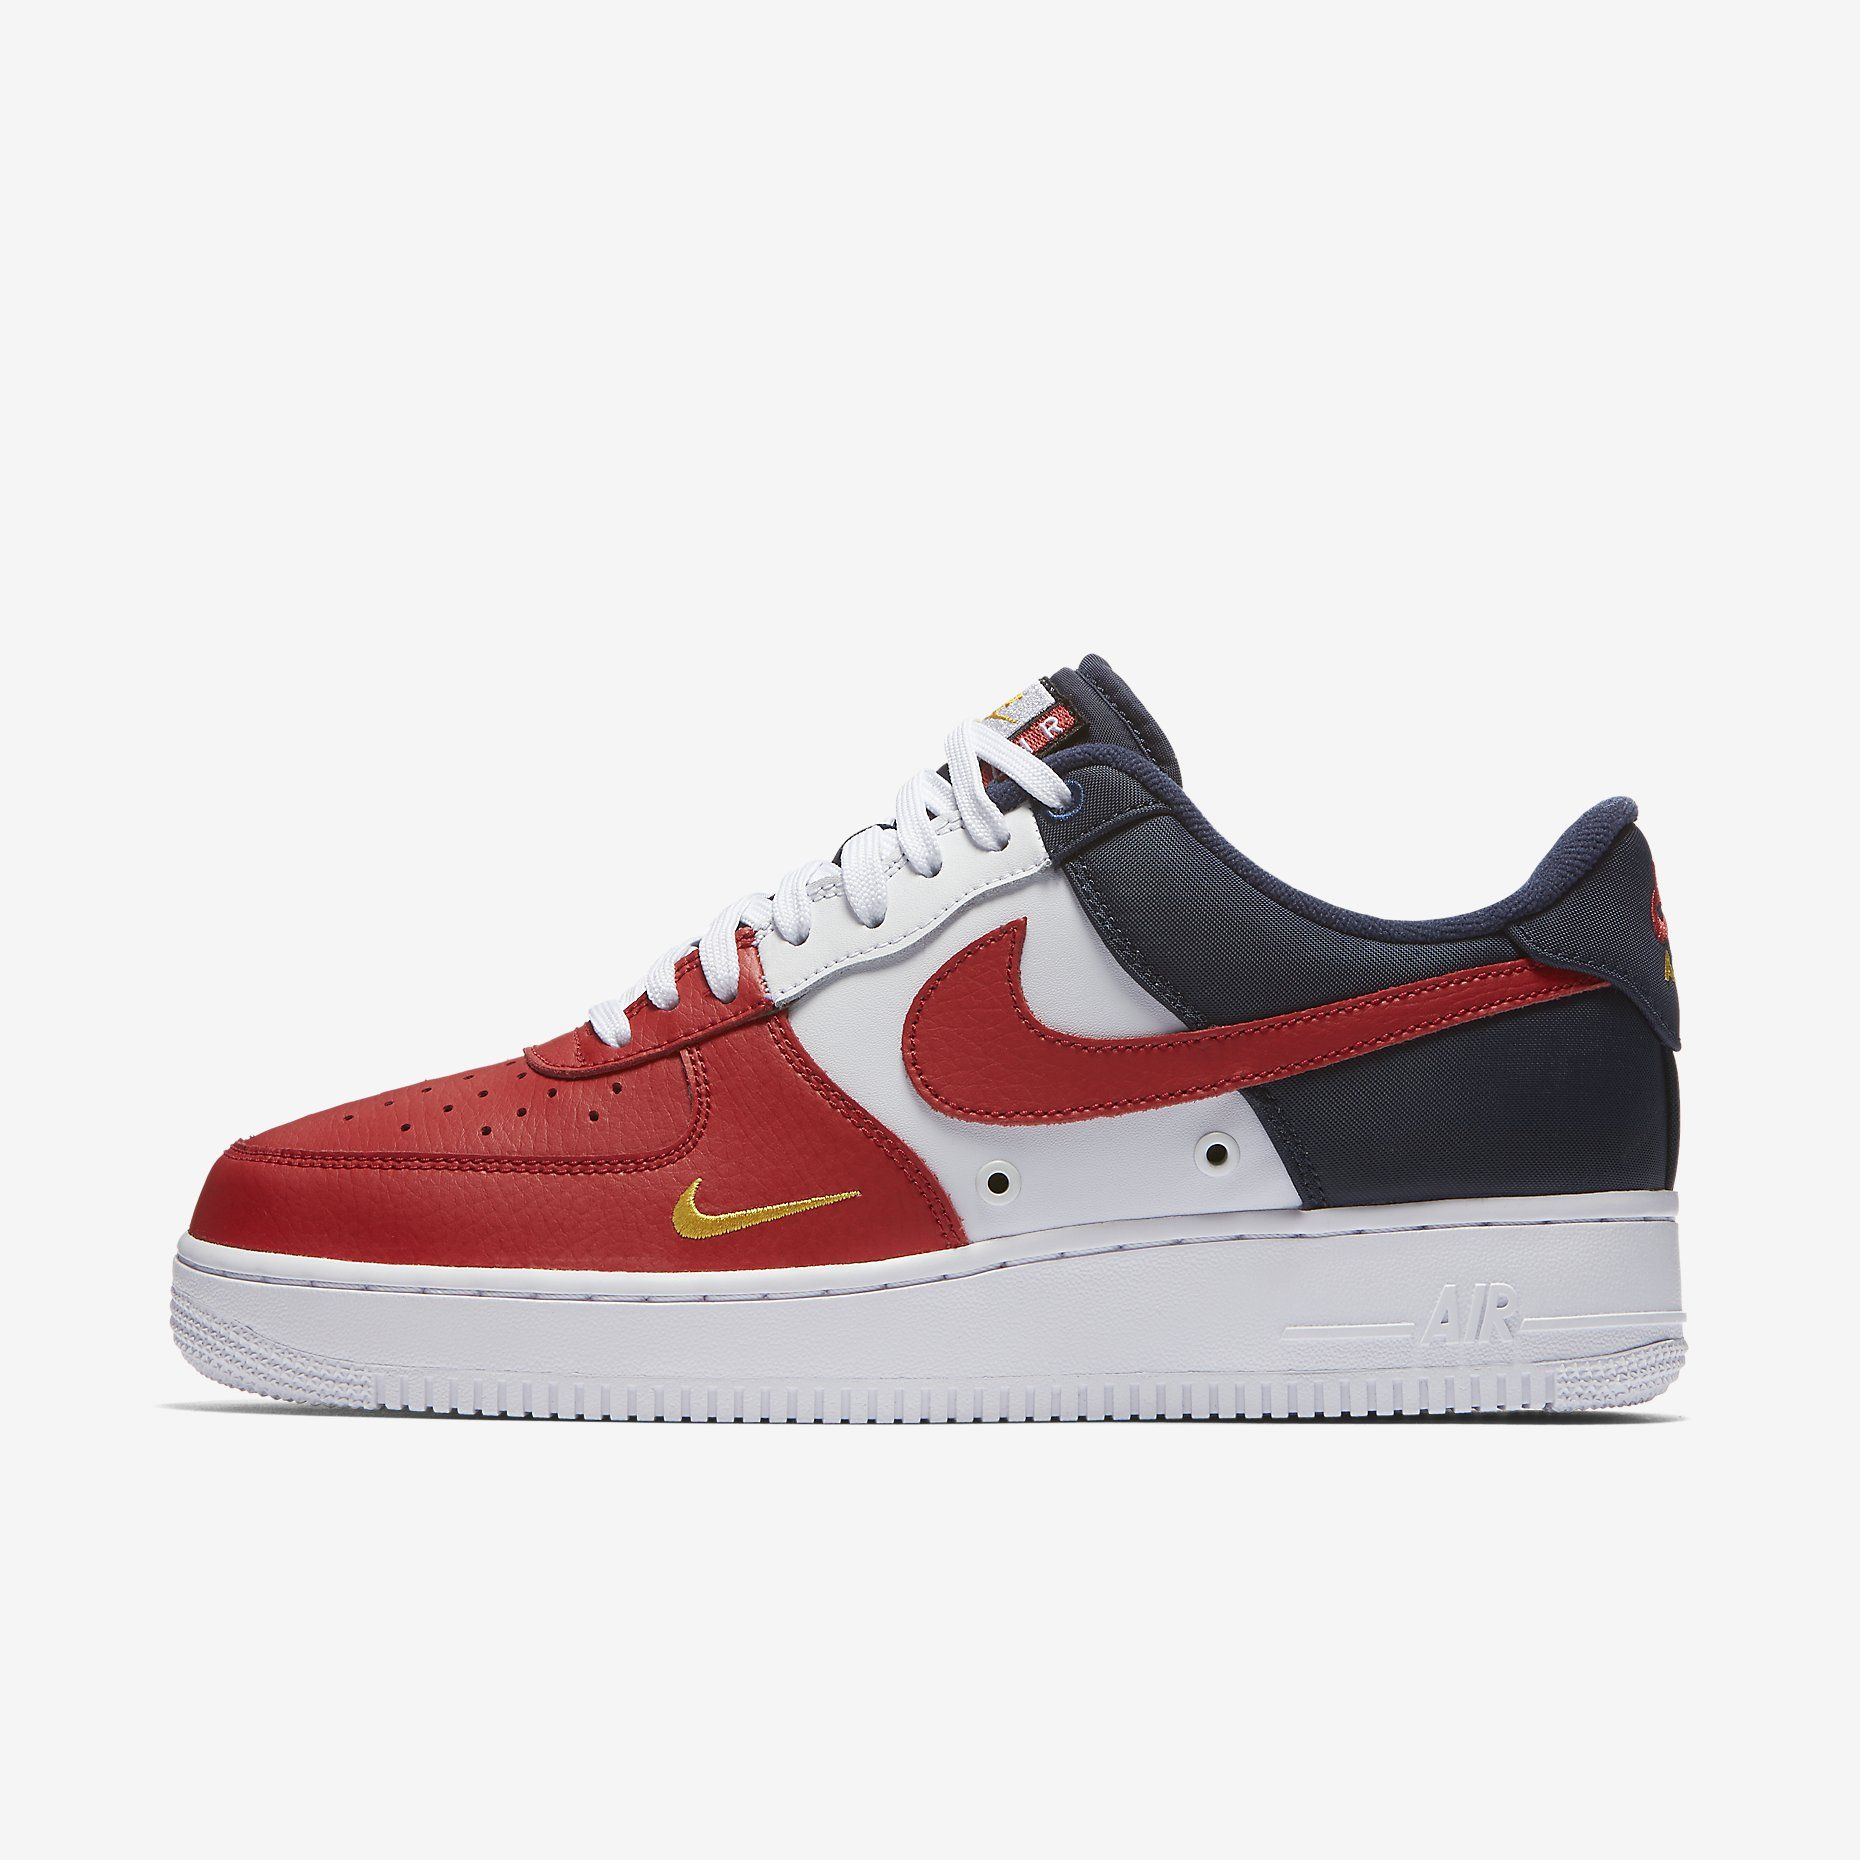 Air Force 1, Nike Air Force, Sneaker Heads, Nike Shoes, University, Red,  Black, Size 12, Kicks